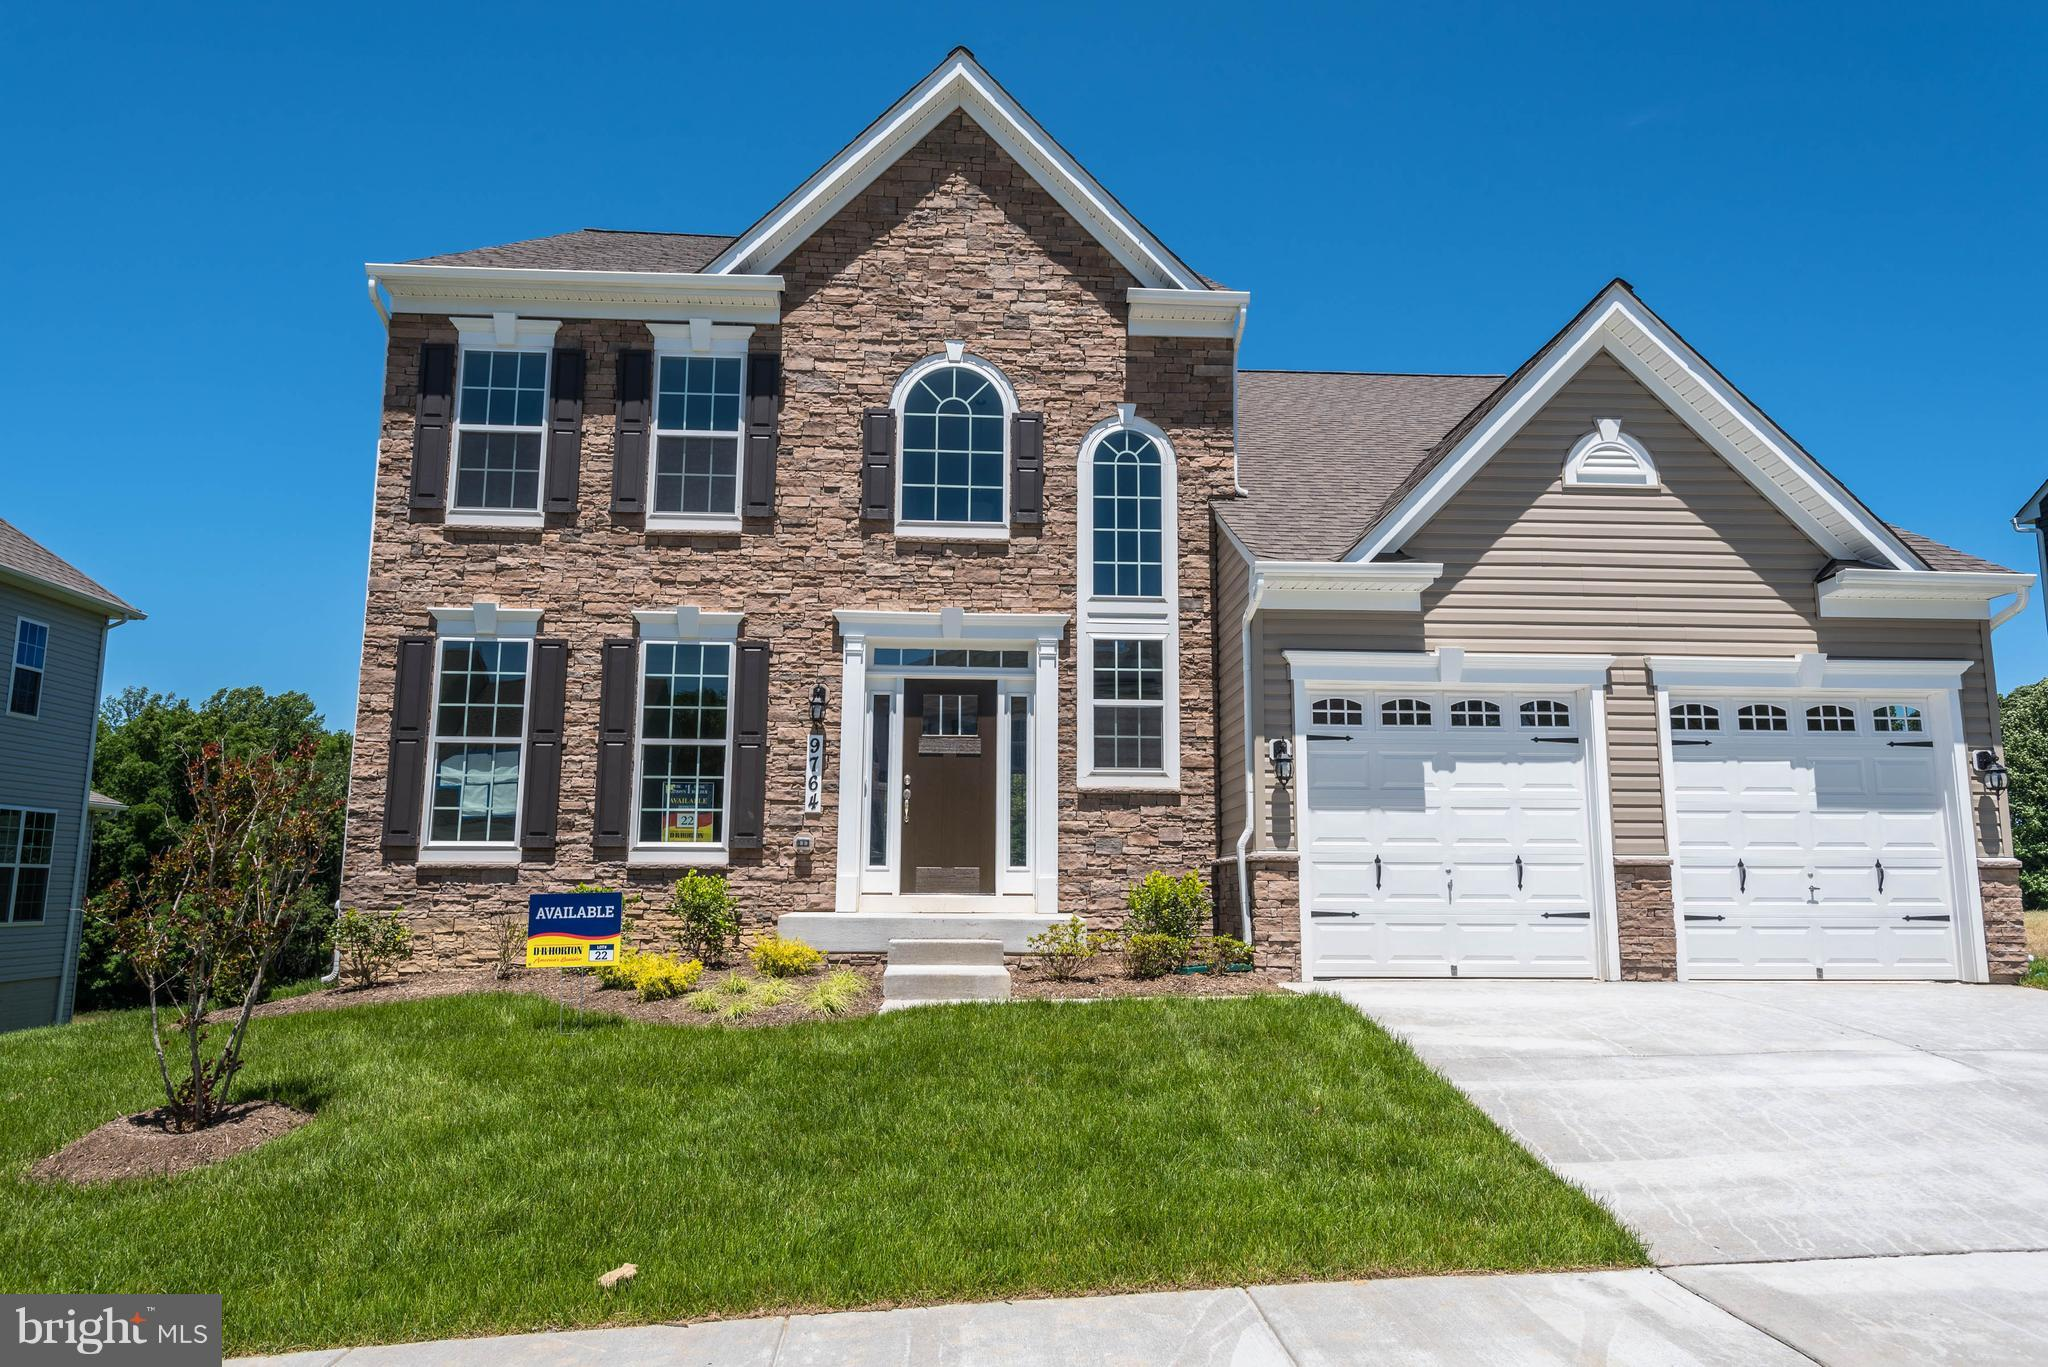 9764 POWDER HALL ROAD, PERRY HALL, MD 21128